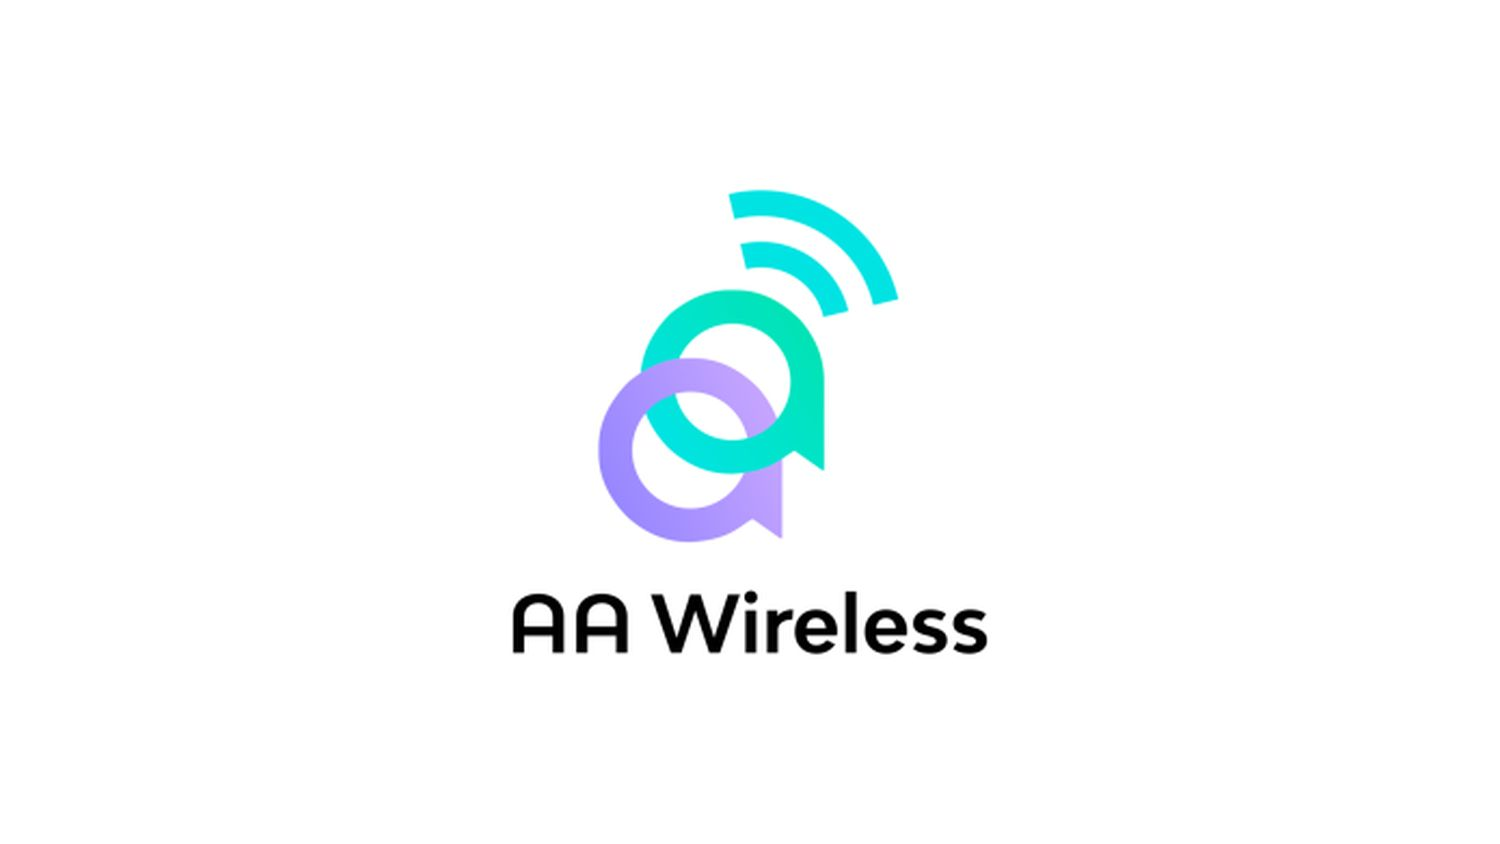 aawireless logo